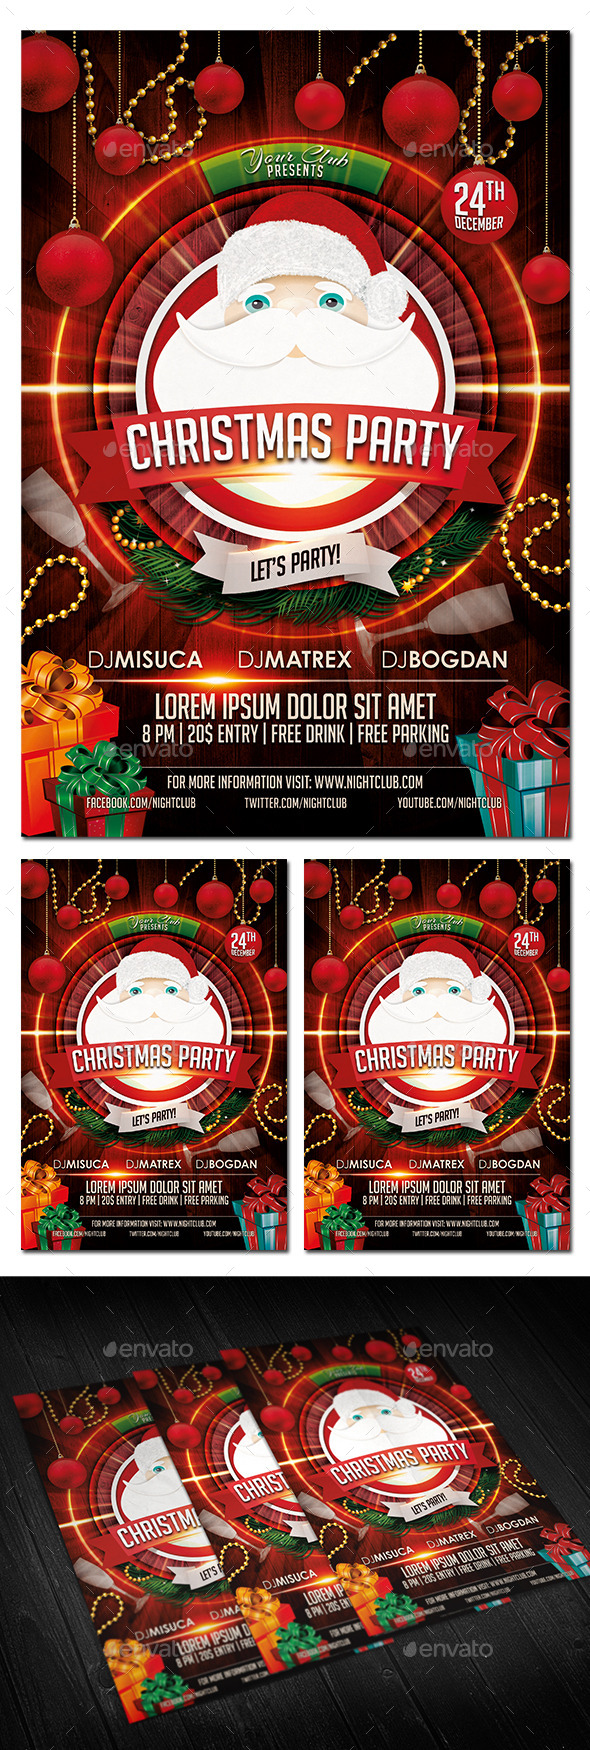 GraphicRiver Christmas Party Flyer 9236441